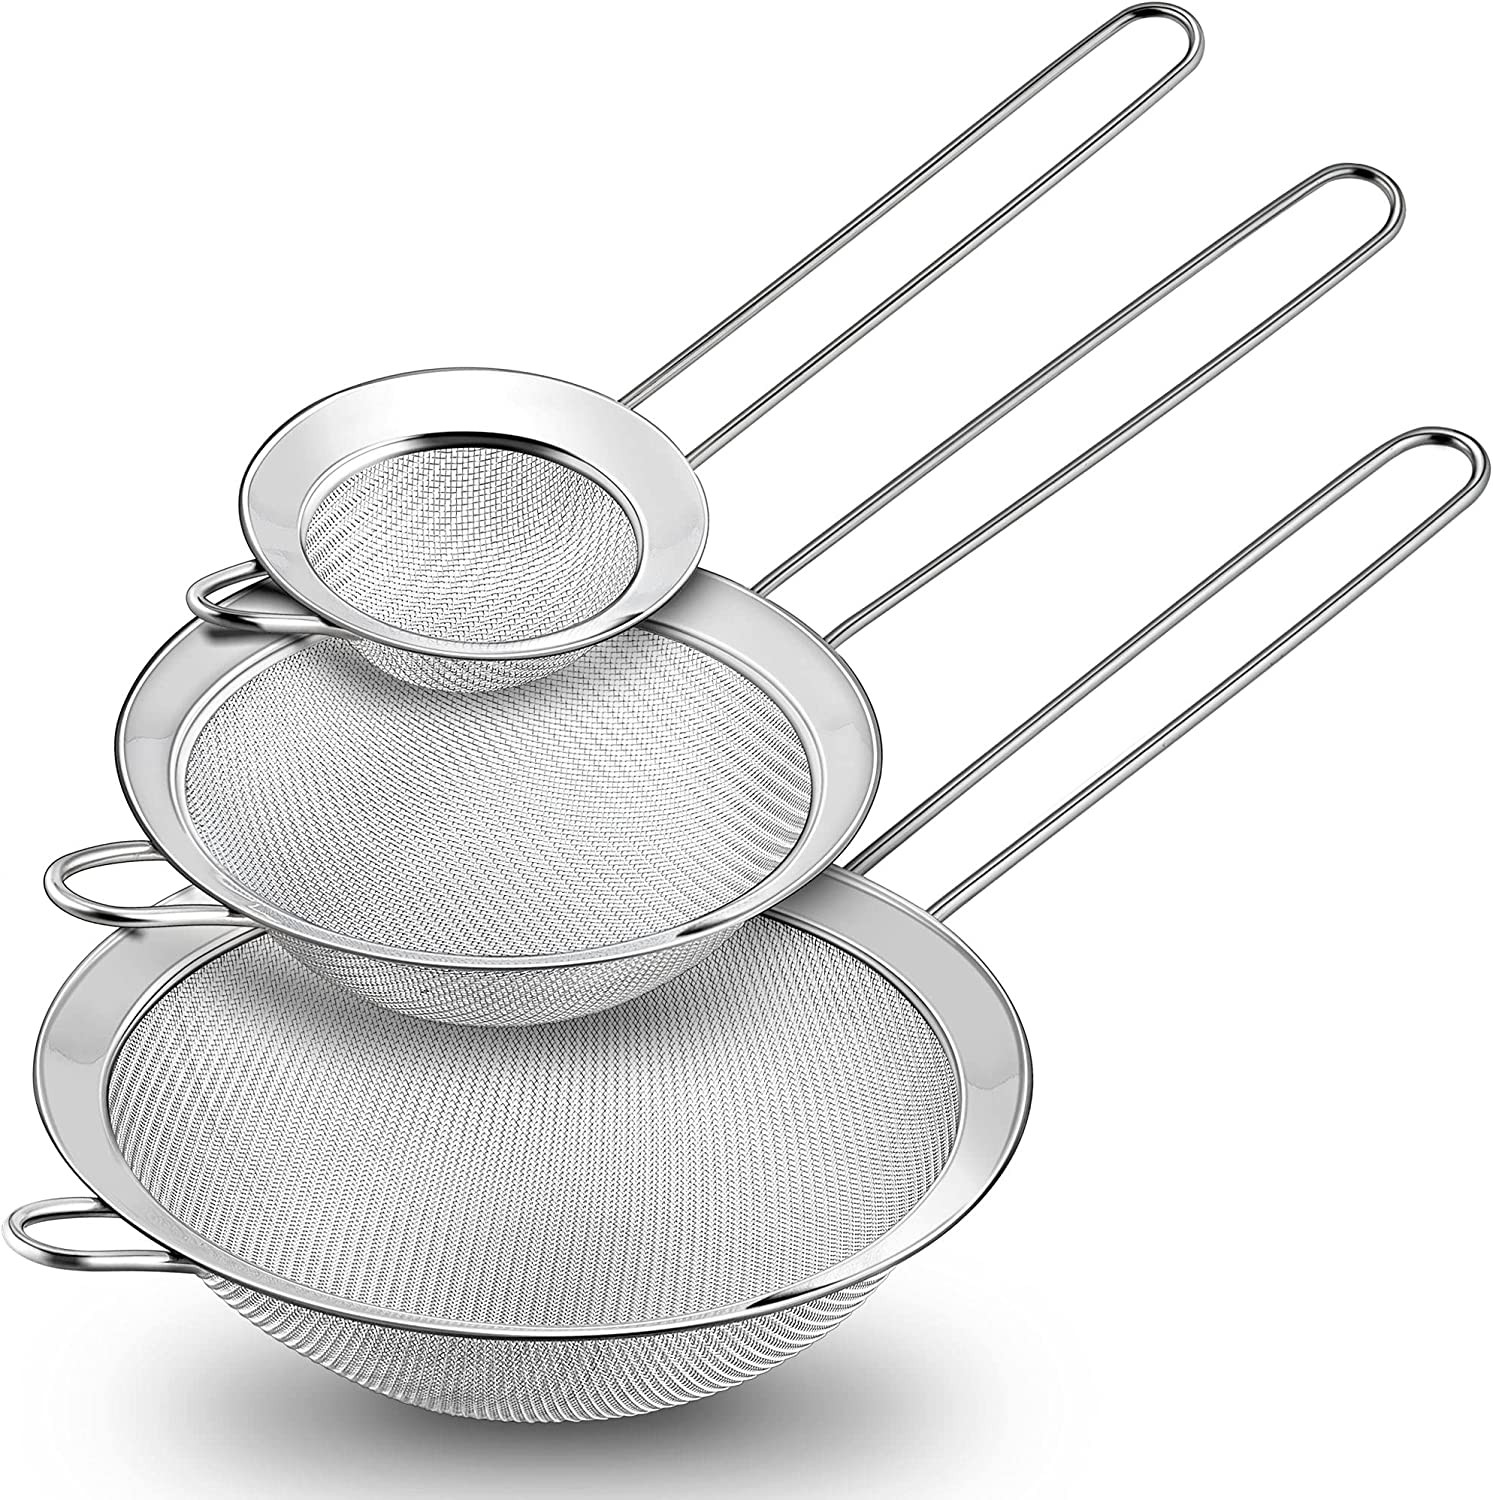 TeamFar Fine Mesh Strainer Set of 3, Stainless Steel Sieve Fine Mesh, Food Strainer Wire Sieve Sifters with Handle for Baking, Sifting Flour / Juice / Quinoa / Pasta, Stackable & Dishwasher Safe